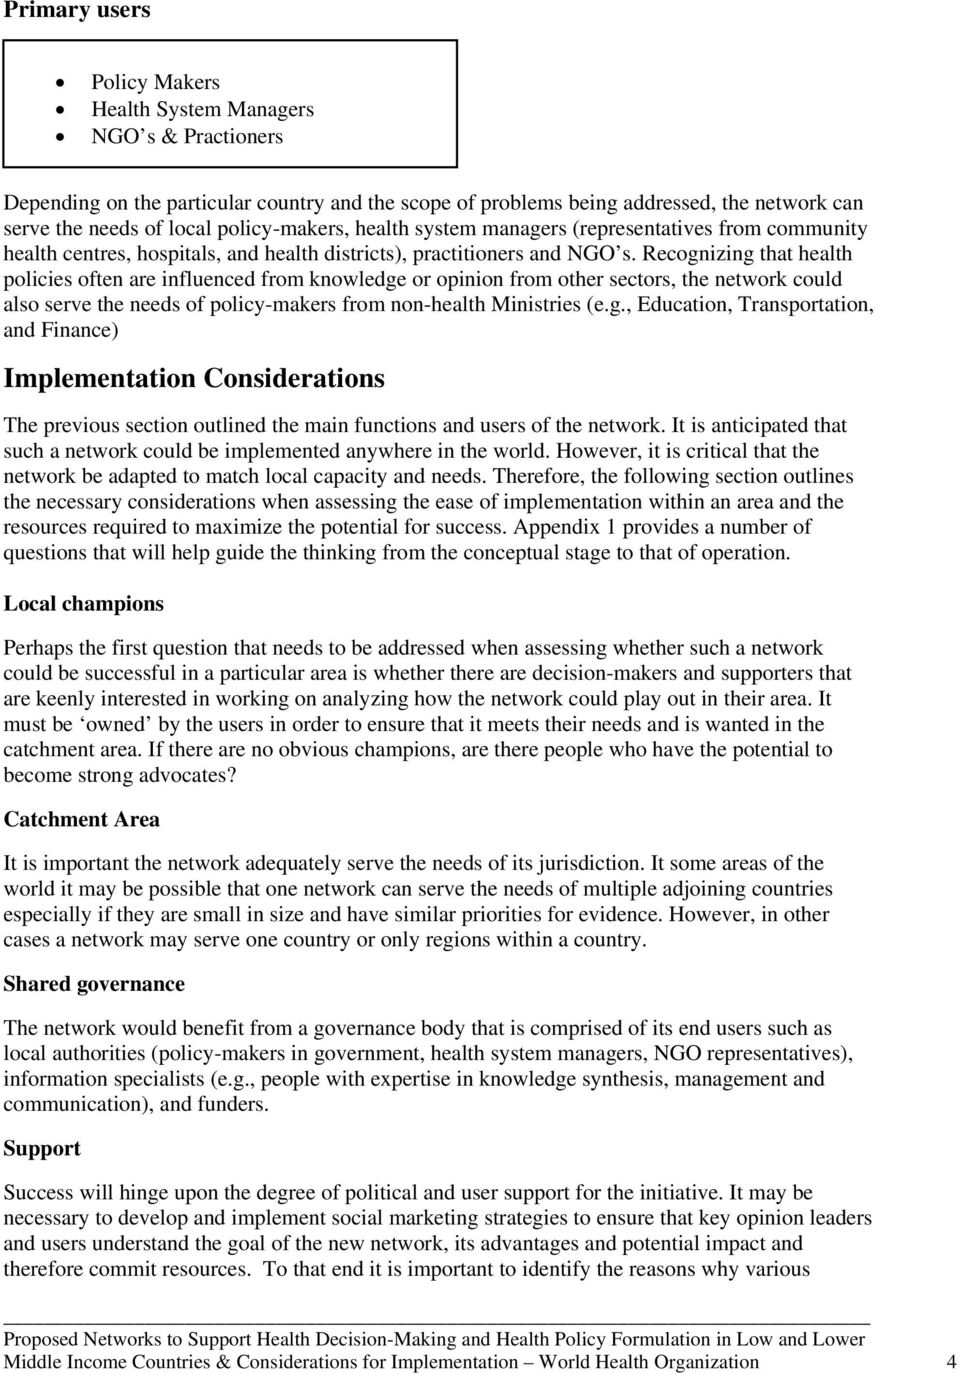 Recognizing that health policies often are influenced from knowledge or opinion from other sectors, the network could also serve the needs of policy-makers from non-health Ministries (e.g., Education, Transportation, and Finance) Implementation Considerations The previous section outlined the main functions and users of the network.